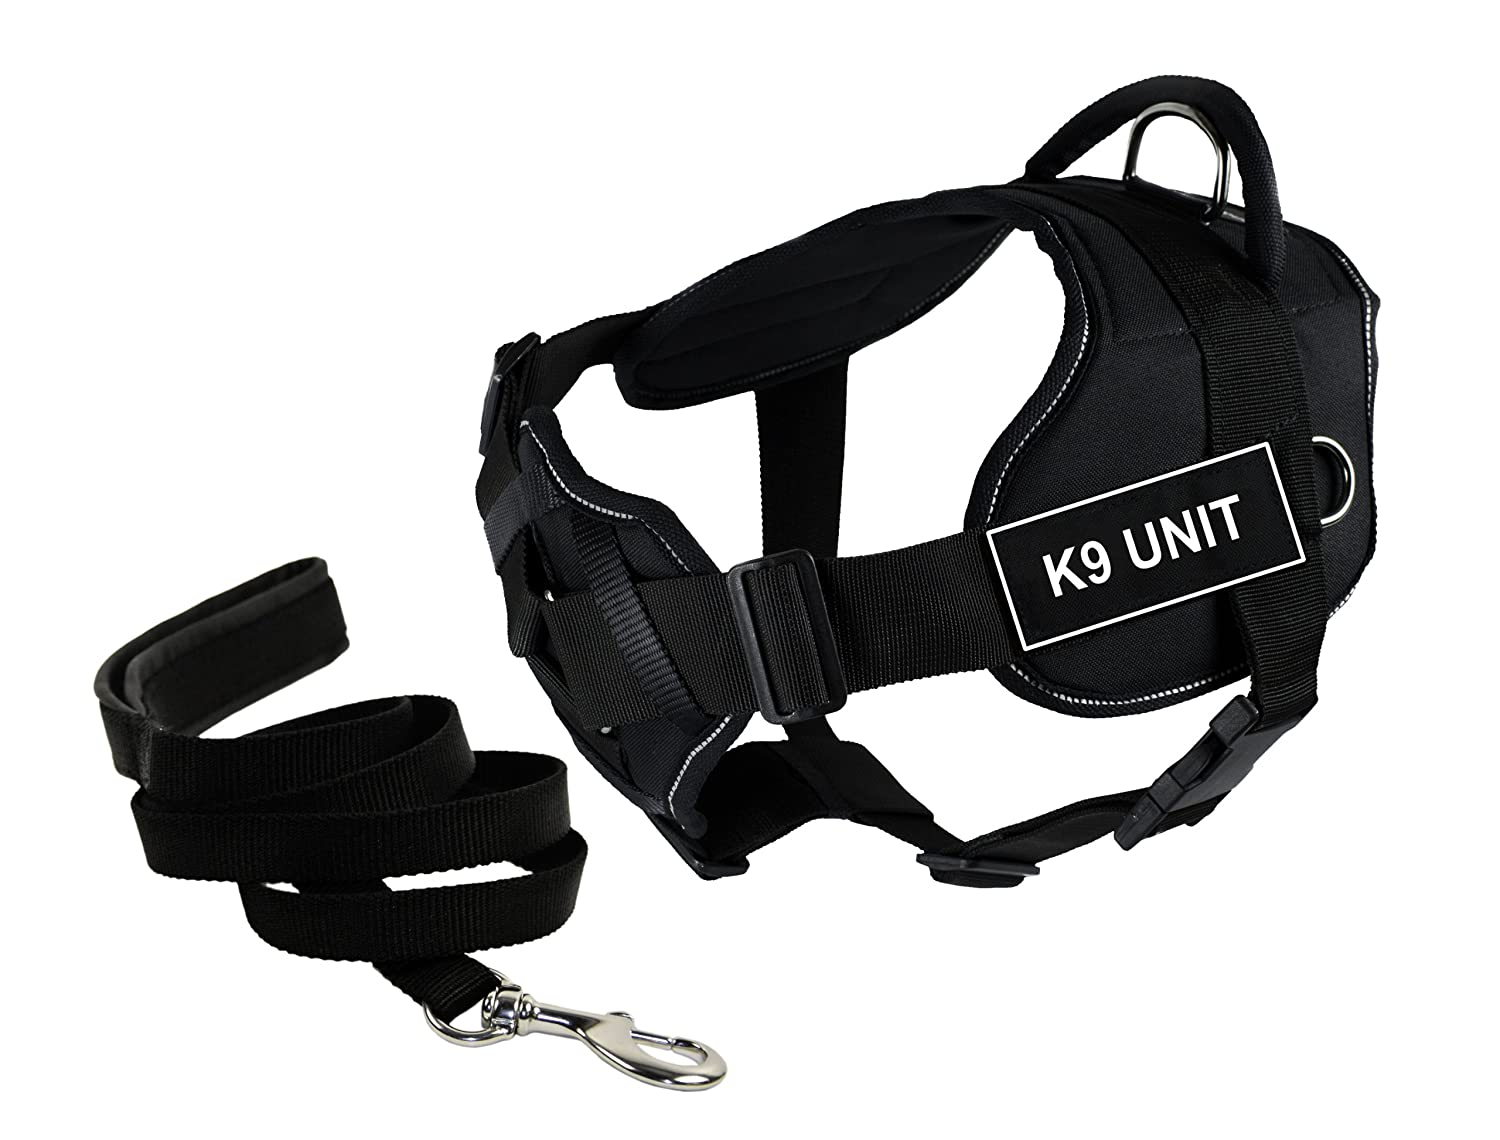 Dean & Tyler Bundle of 32 to 42-Inch DT Fun Harness with Chest Support and 6-Feet Stainless Snap Padded Puppy Leash, K9 Unit, Black with Reflective Trim